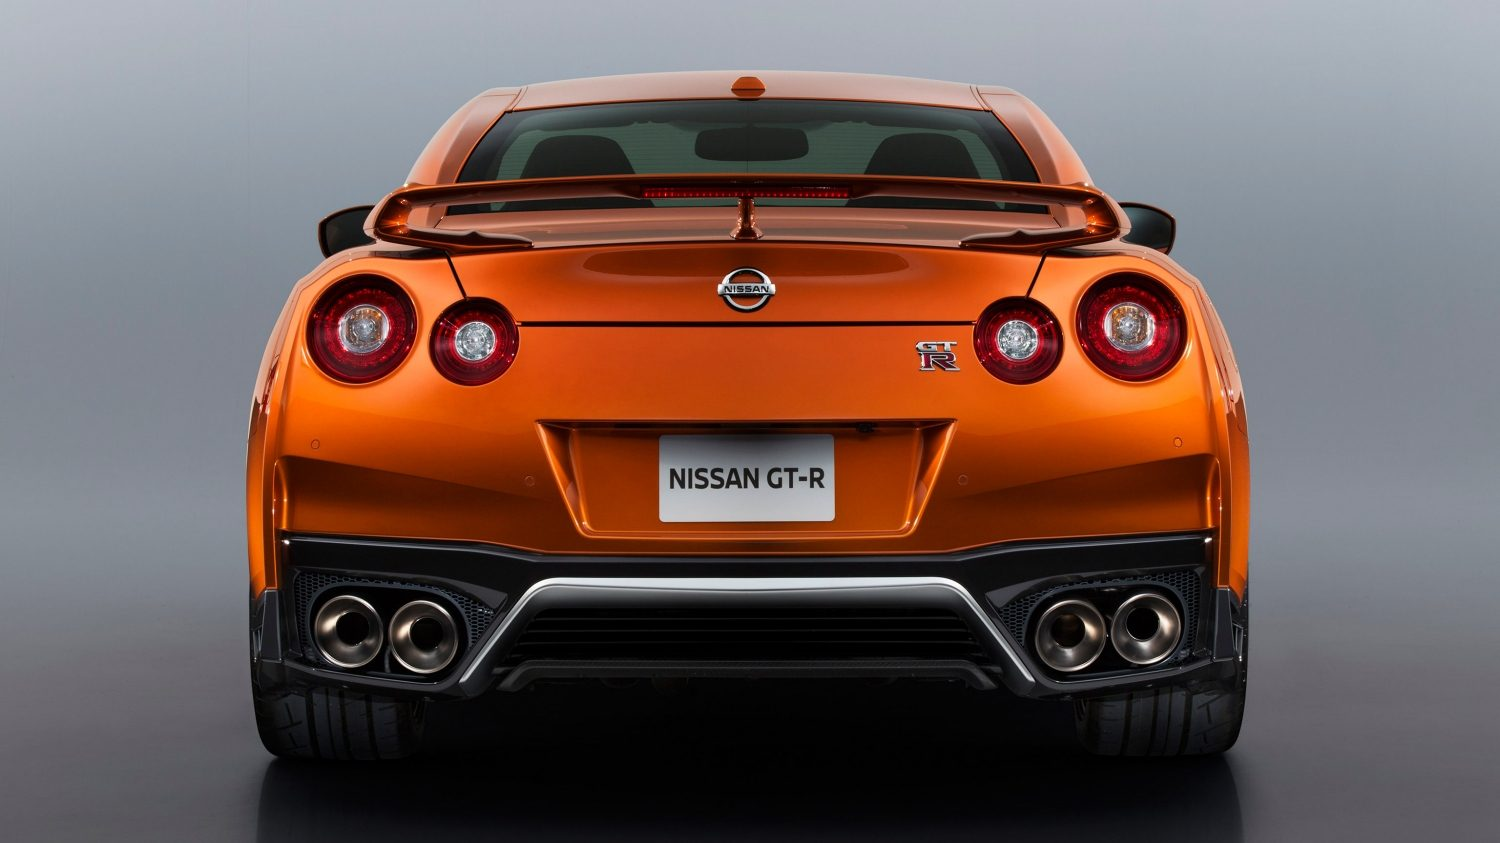 GTR in Orange from the back